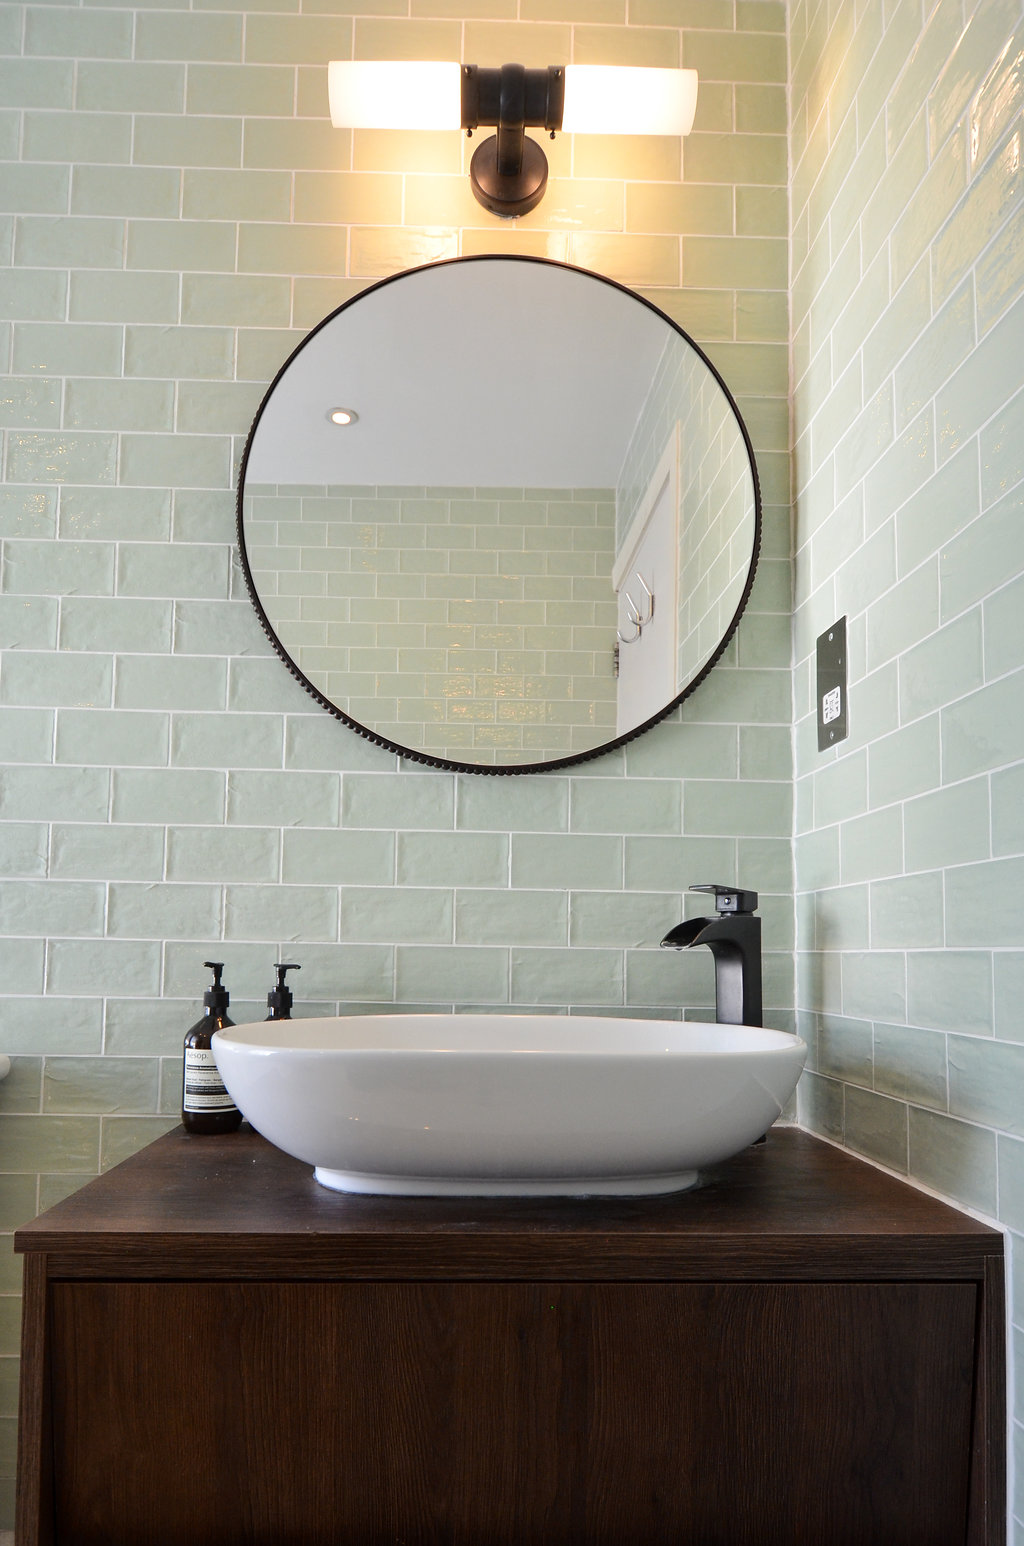 Luxury bathroom refurbishment and interior design, Highbury N5 - North London